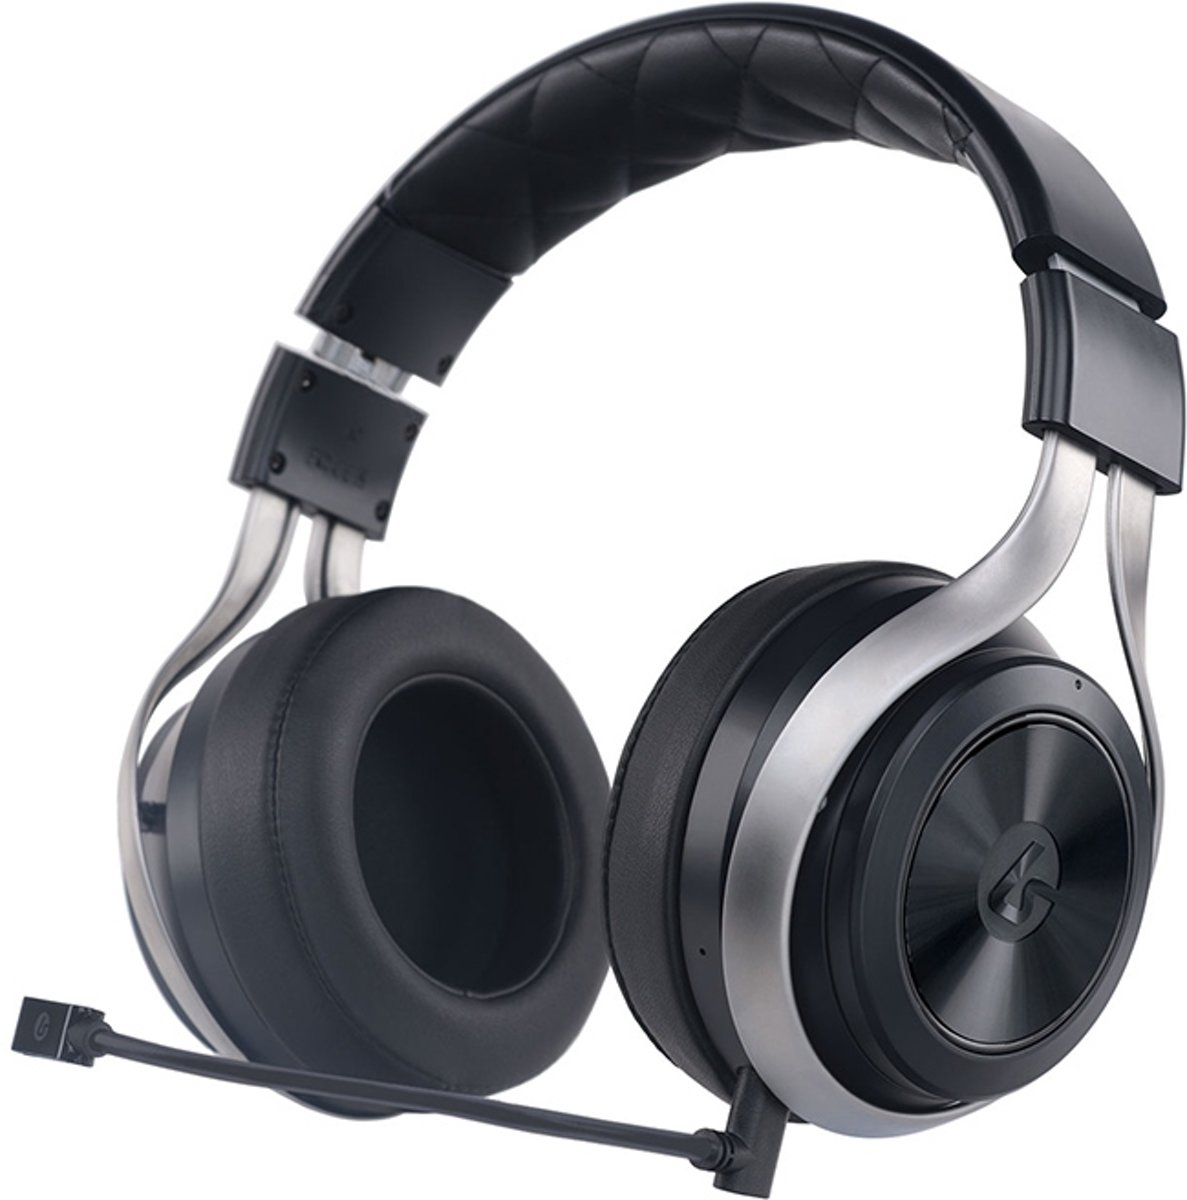 LS30 Wireless Headset - Silver Black (PC/PS4/XO)